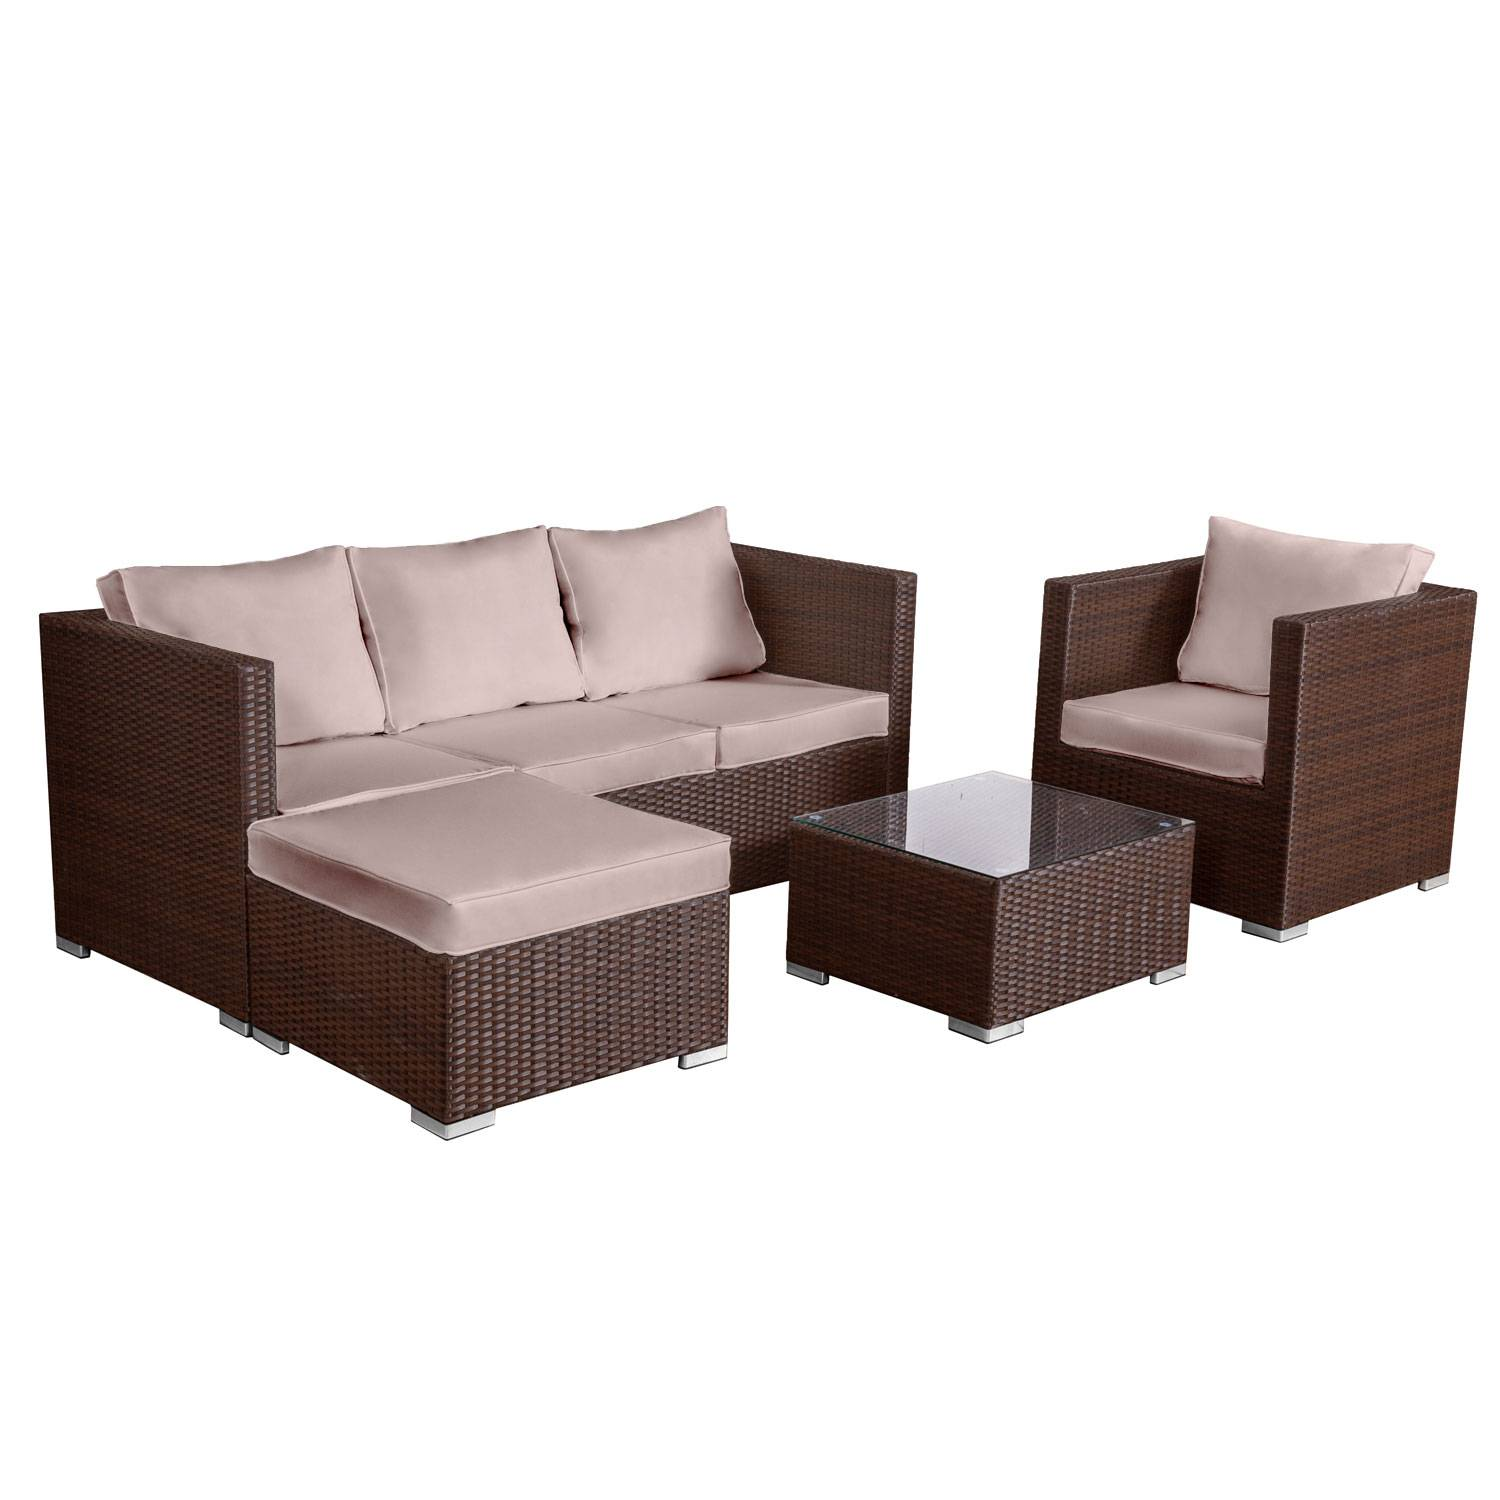 salon de jardin bas r sine tress e marron 4 places carg se. Black Bedroom Furniture Sets. Home Design Ideas